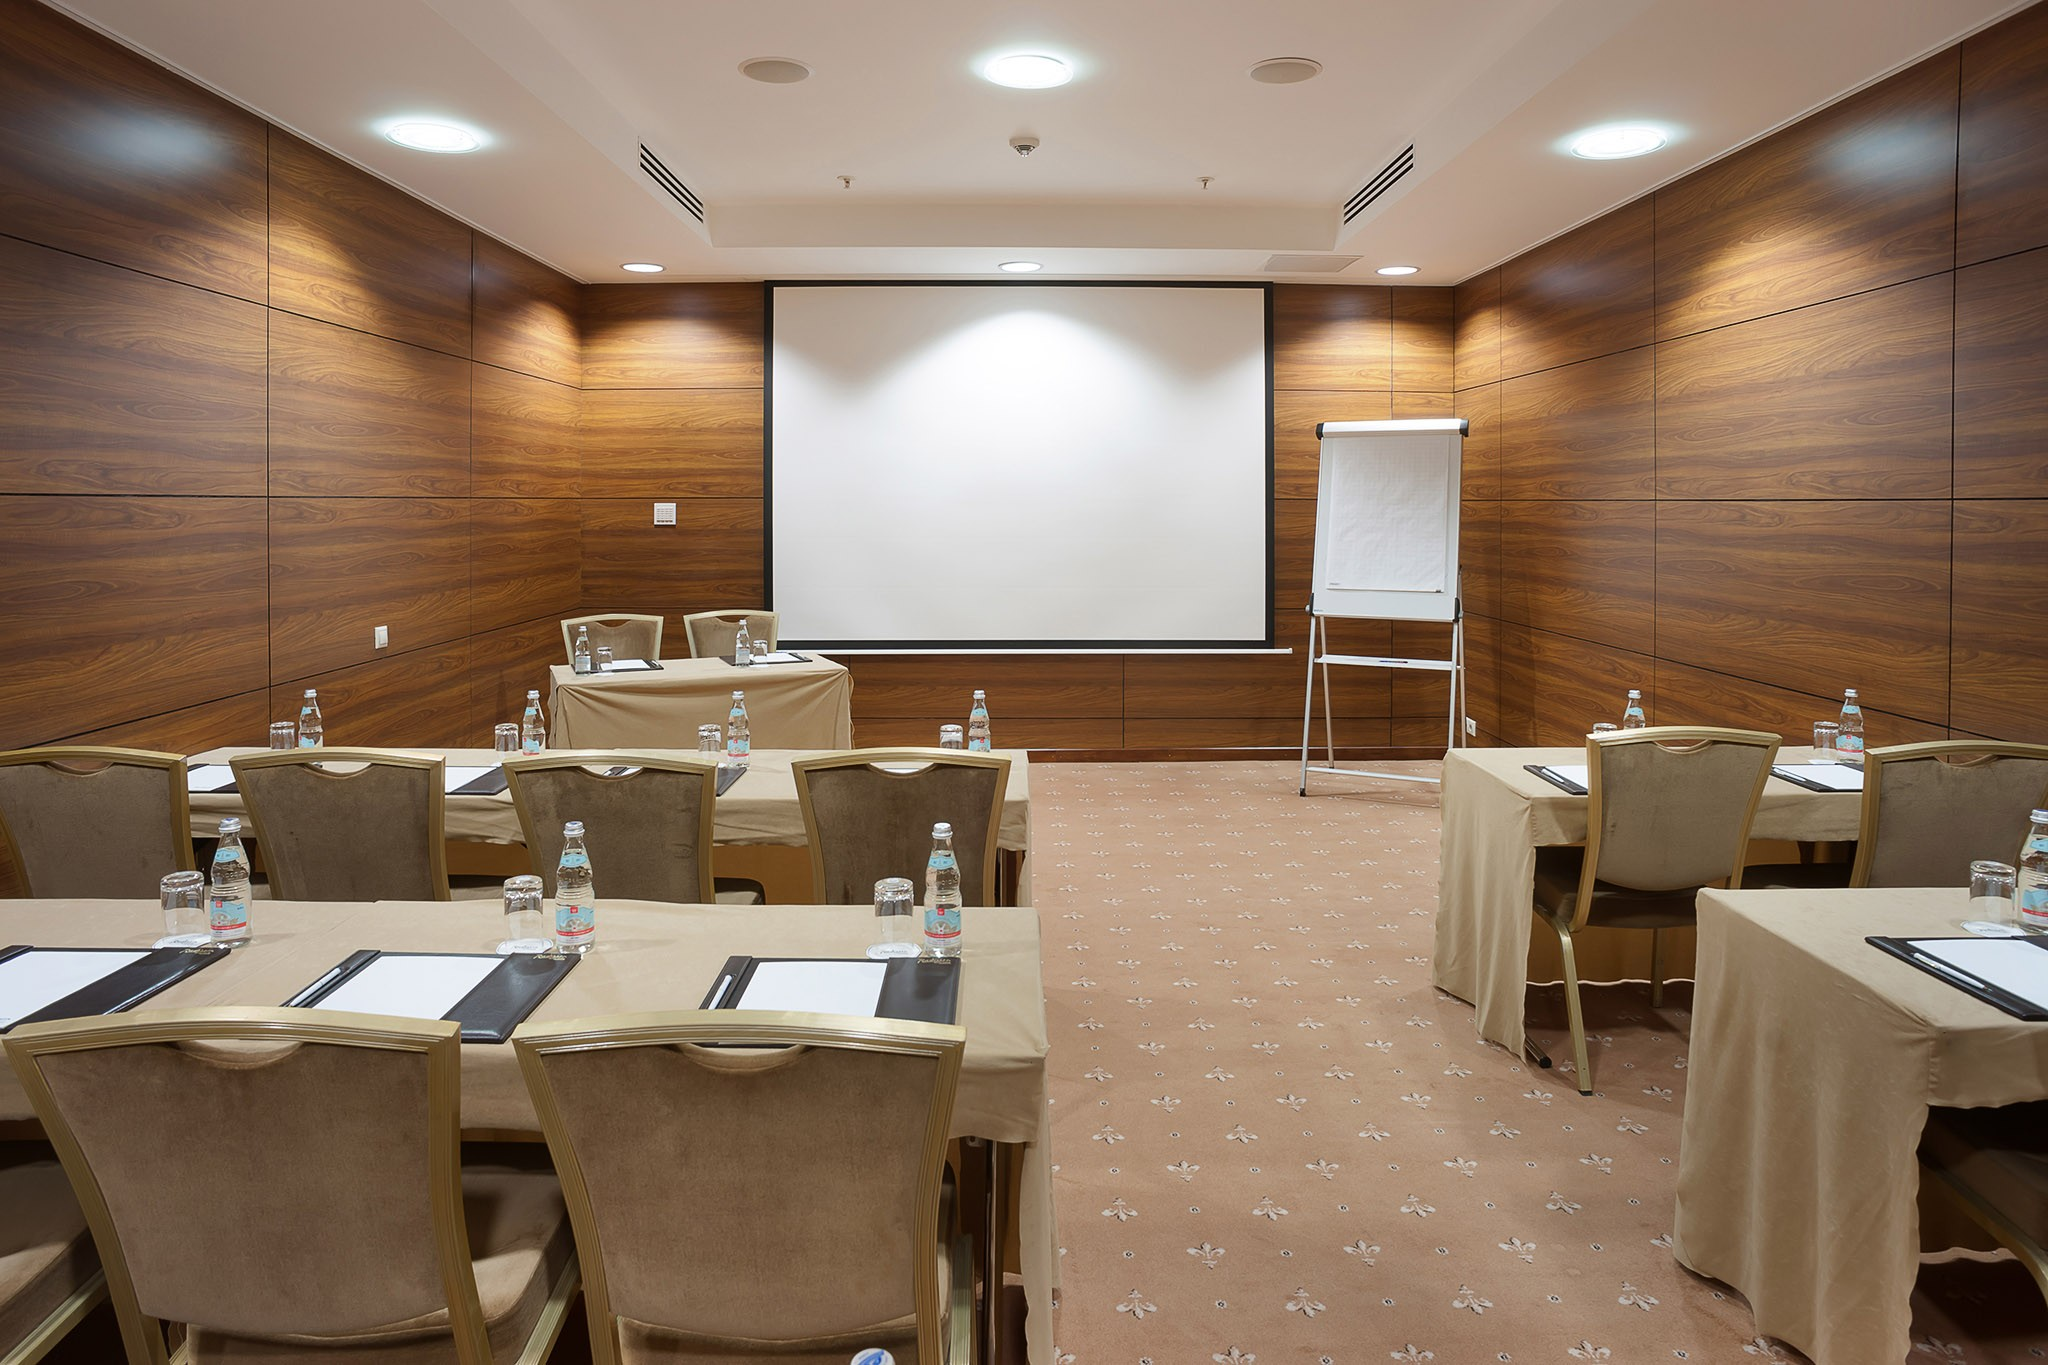 The meeting room. Interior photography for presentation